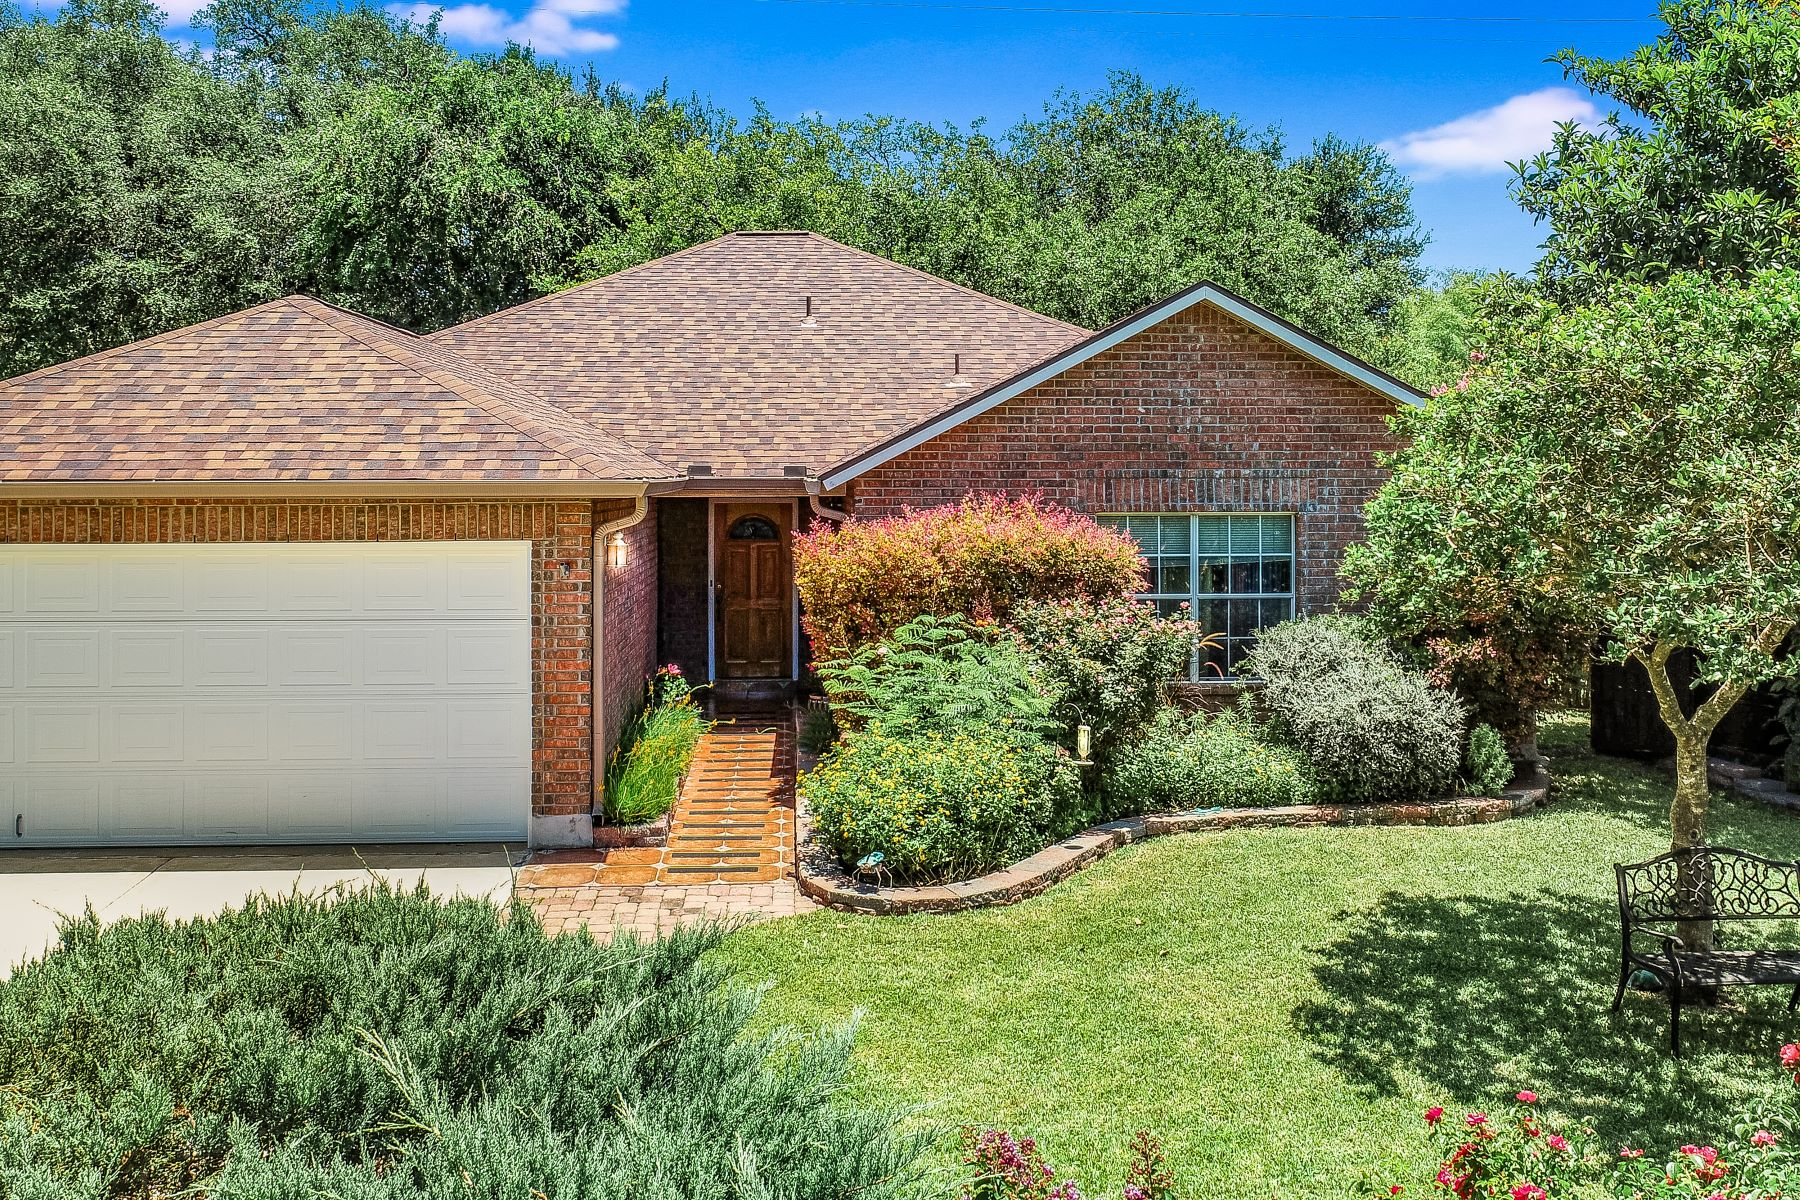 Single Family Homes for Active at Charming Home In Greenshire 2901 Lotus Park Schertz, Texas 78154 United States